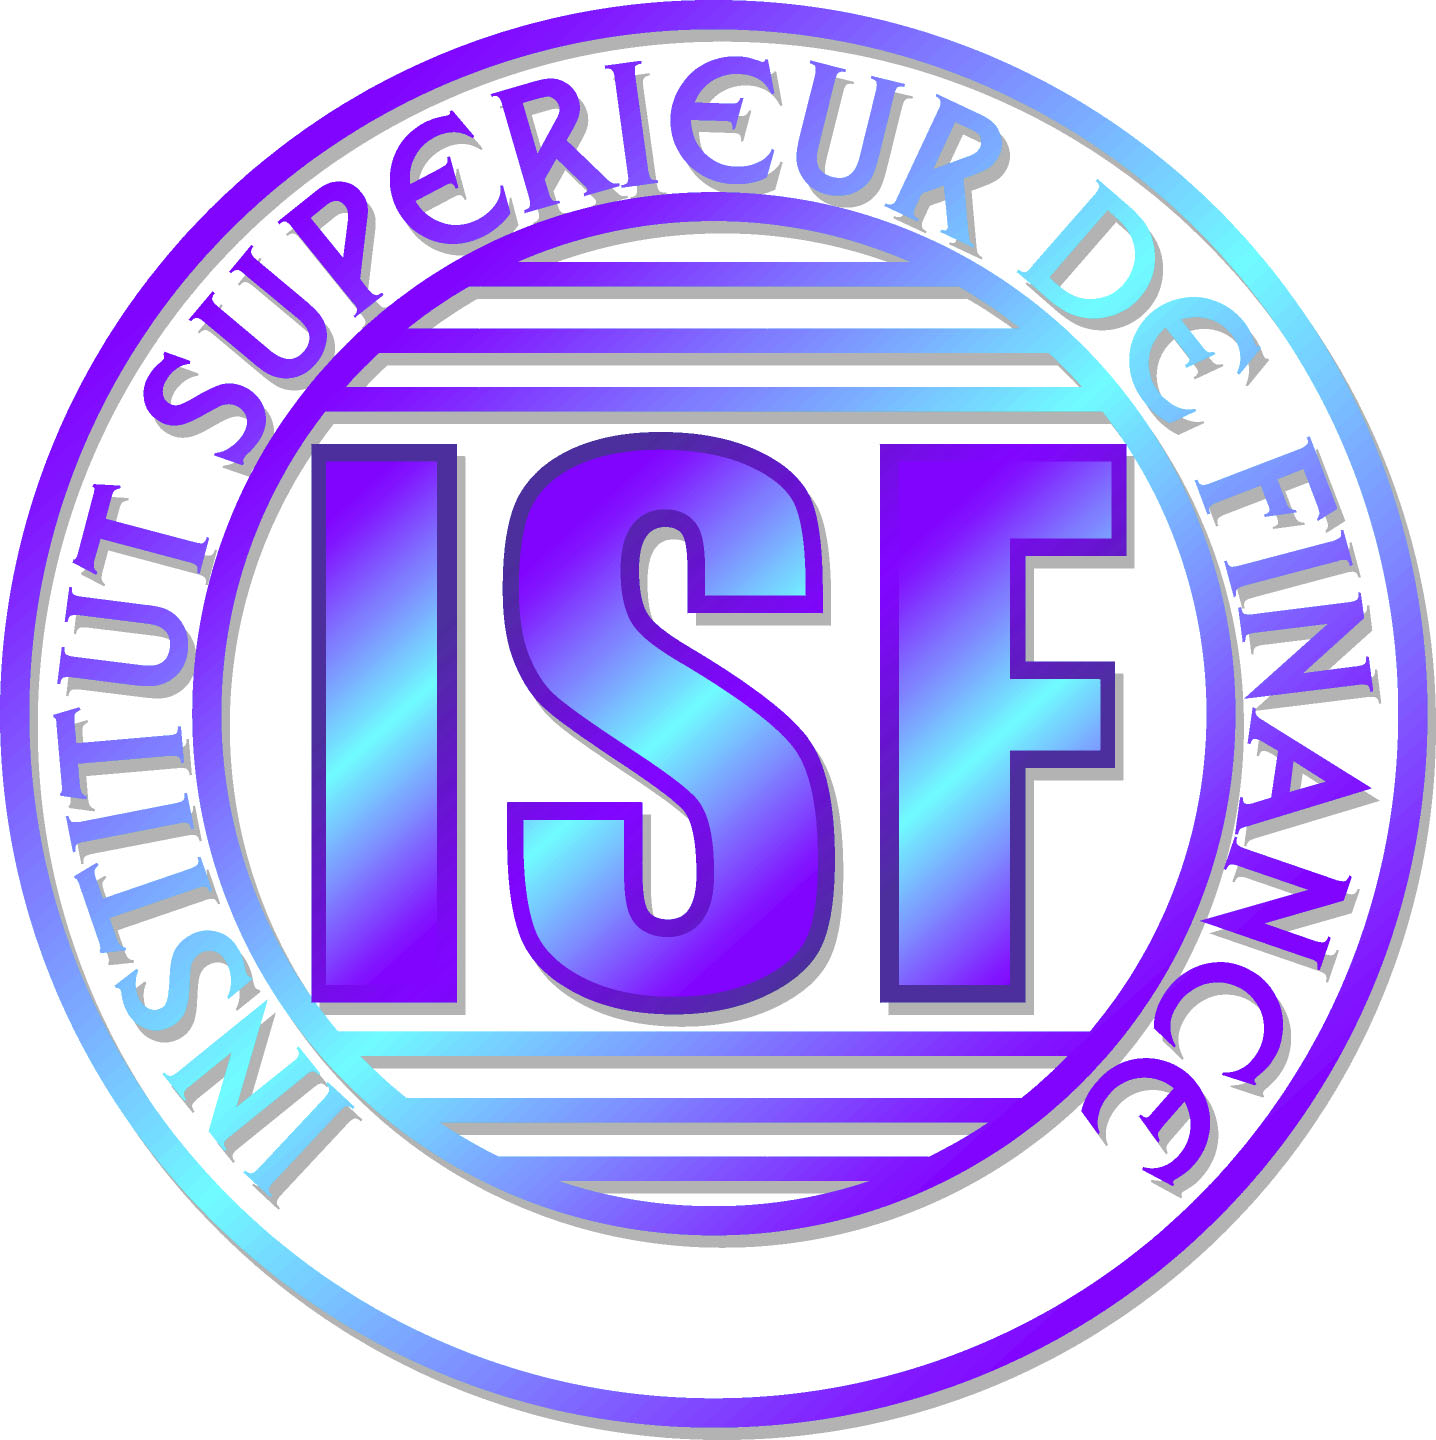 INSTITUT SUPERIEUR DE FINANCE (ISF) Allées Seydou TALL x Canal IV Point E Rue PE 48 Tél 33 824 93 78 / 77 645 07 99 / 77 449 68 20 Fax : 33 824 93 77 E-mail : isfcom@yahoo.fr - Site web : http://www.